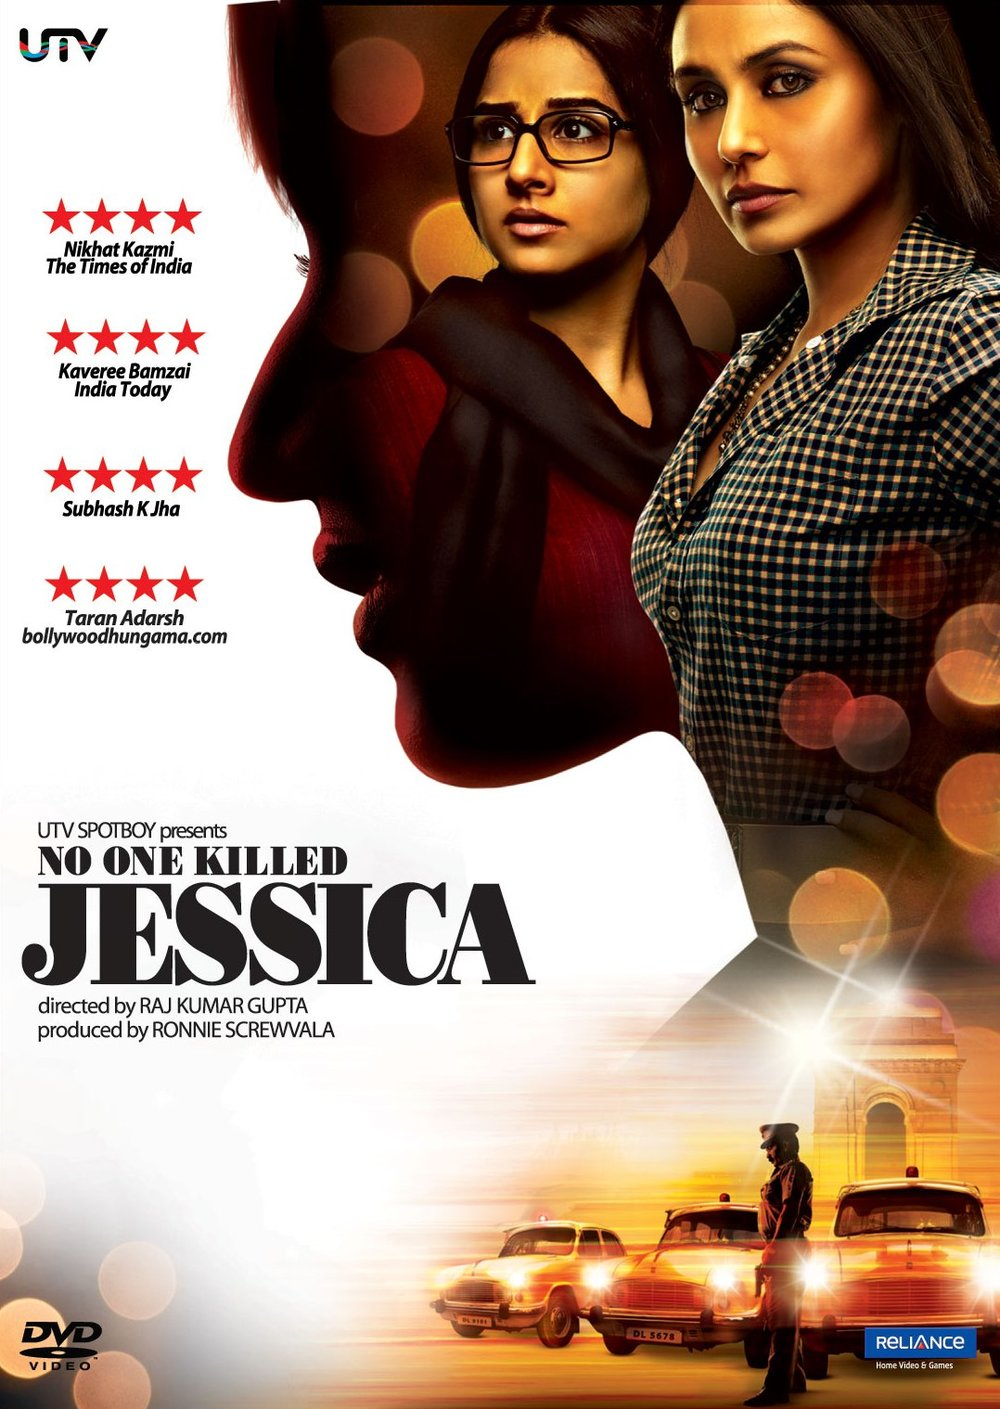 No-One-Killed-Jessica---DVD-Slipcase1.jpg